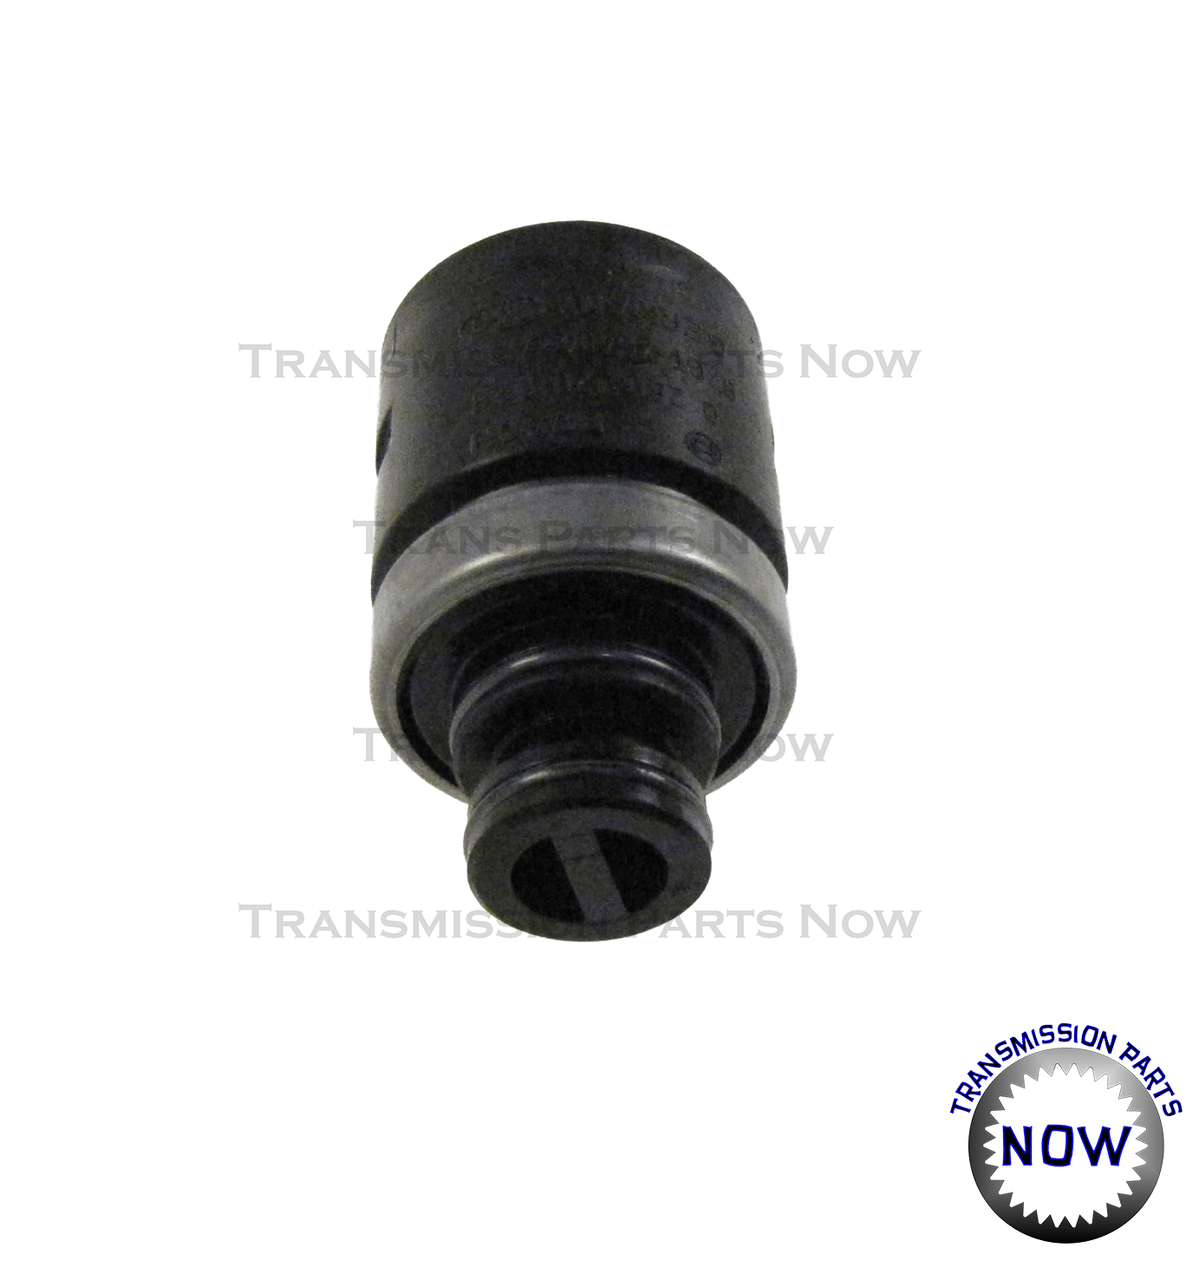 small resolution of shift coast clutch solenoid 4r55e 5r55e 95 up transmission further toyota pickup transmission diagram on 4r55e solenoid diagram